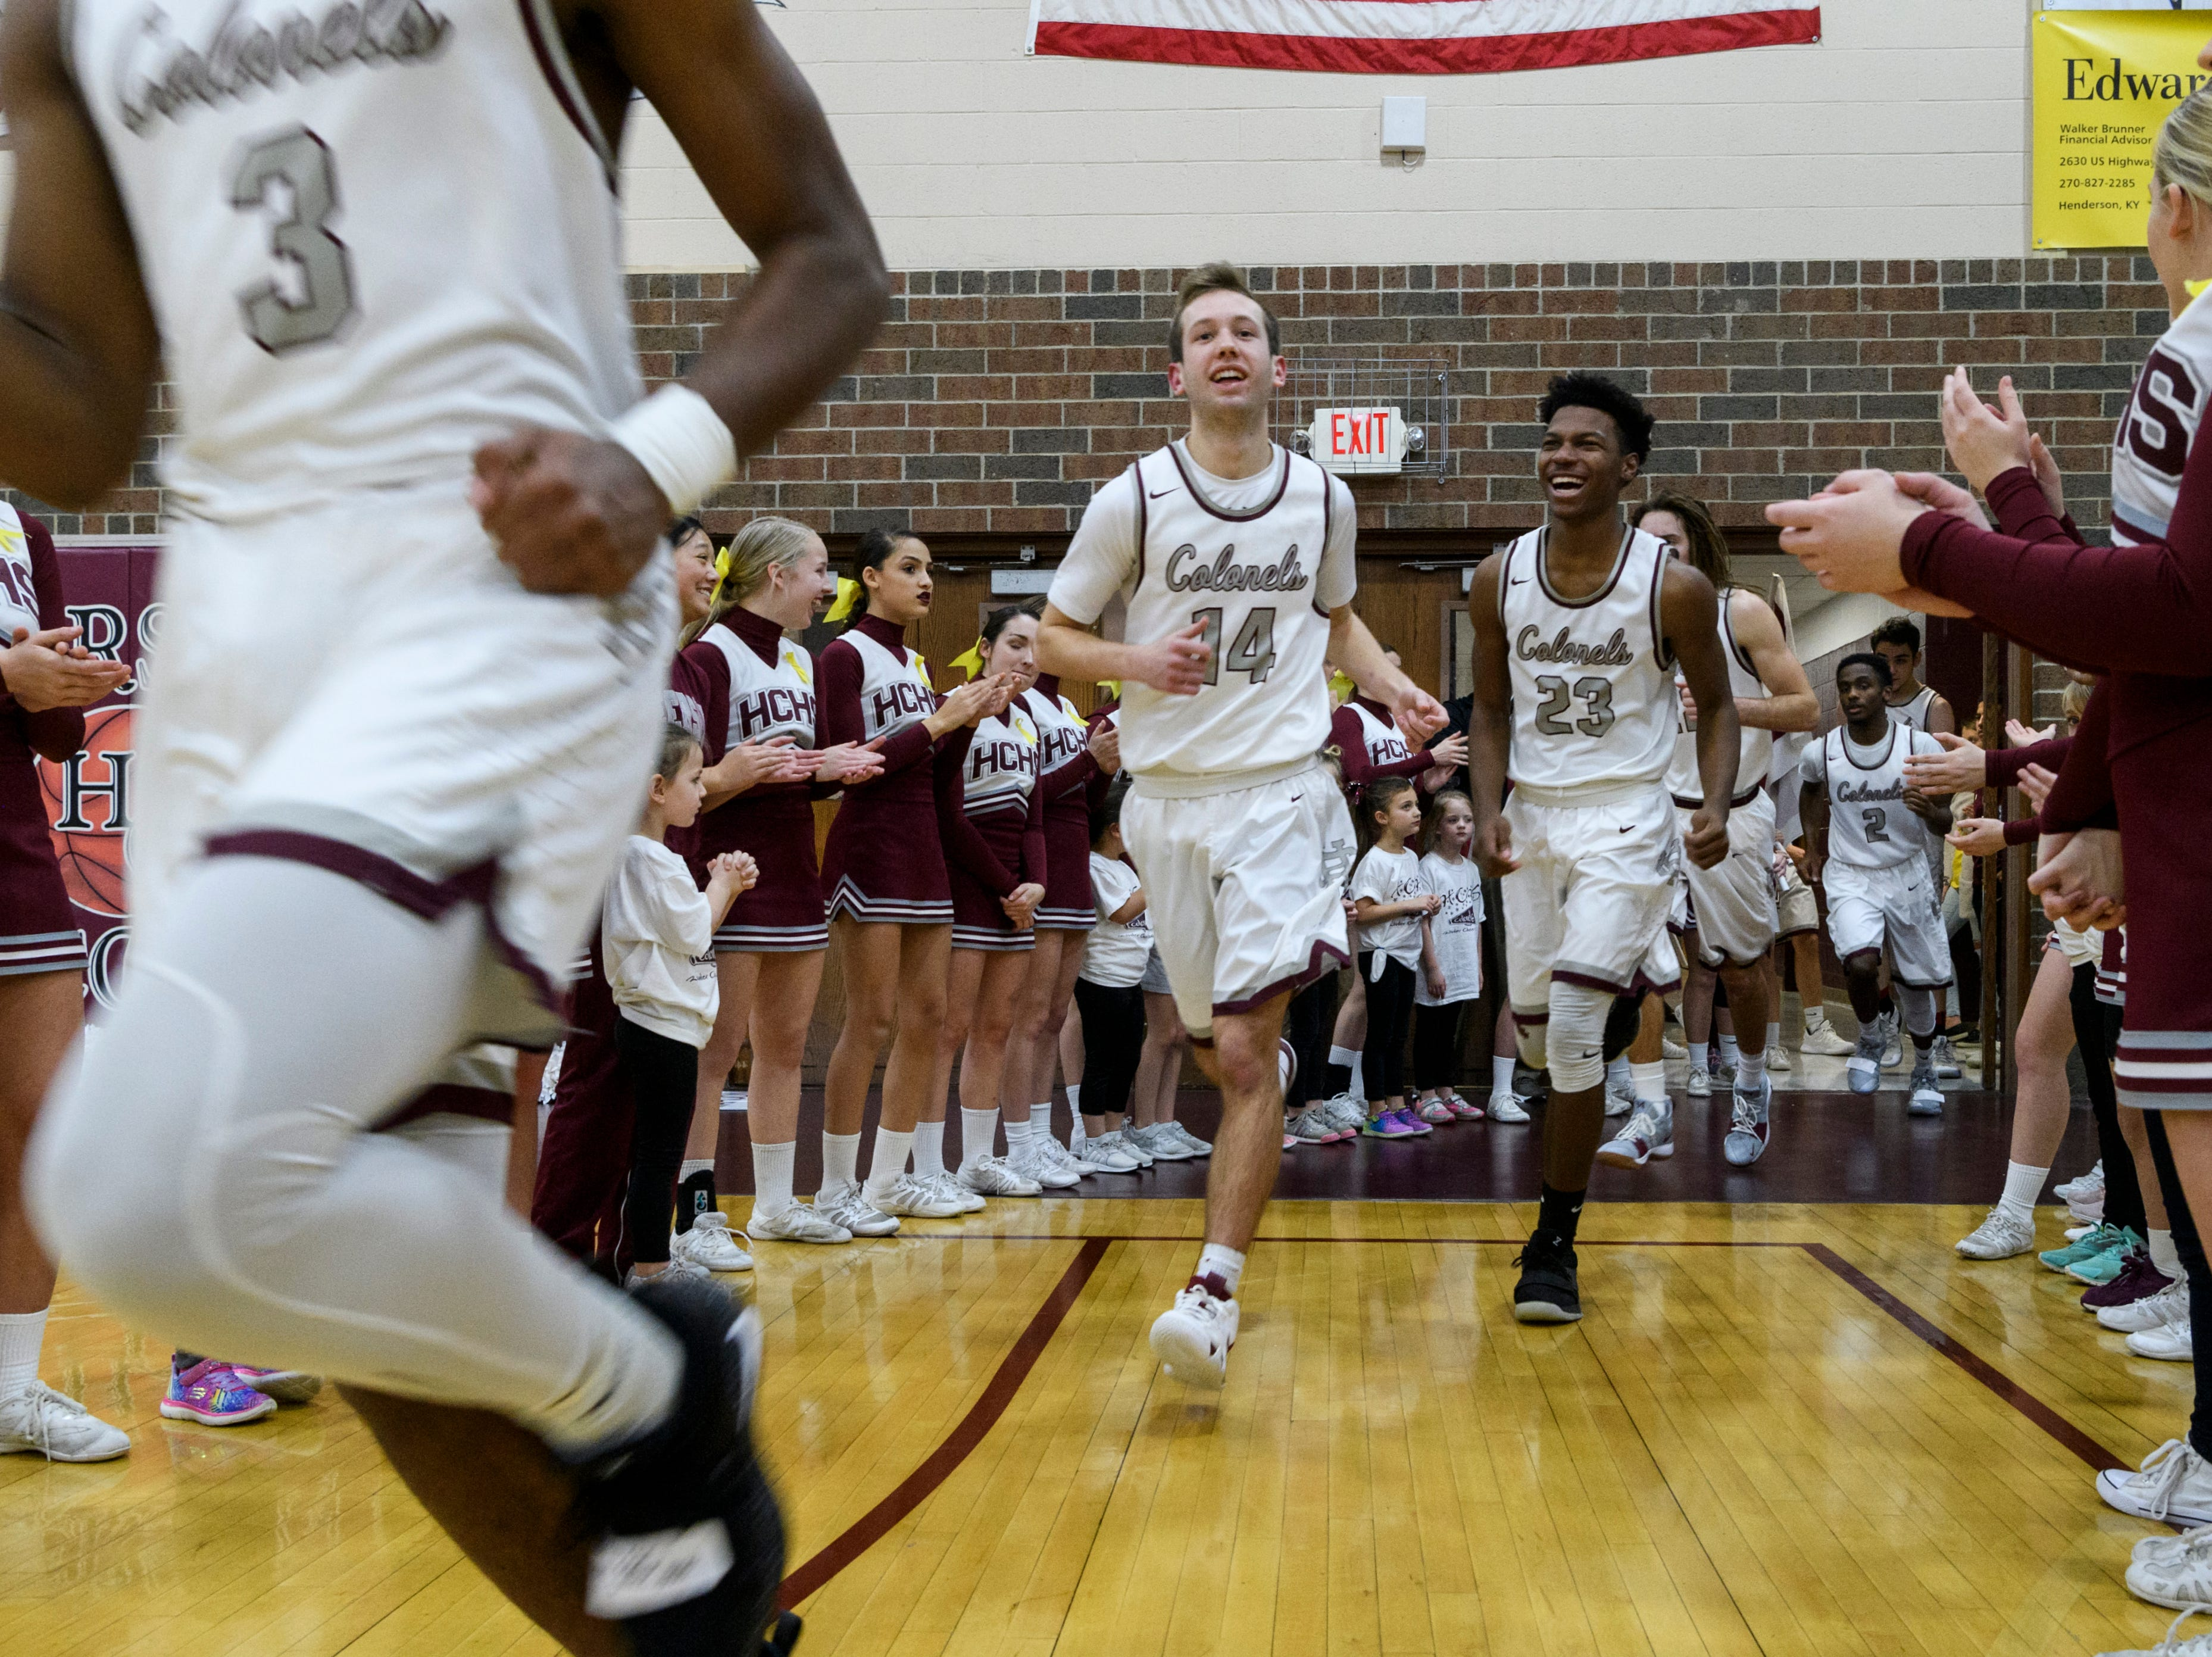 Henderson's Daymian Dixon (3), Holden Raley (14), Myekel Sanners (23) and the rest of the team rush the court before the start of the game against the Christian County Colonels at Henderson County High School in Henderson, Ky., Friday, Dec. 14, 2018. Christian County defeated Henderson County 79-71.